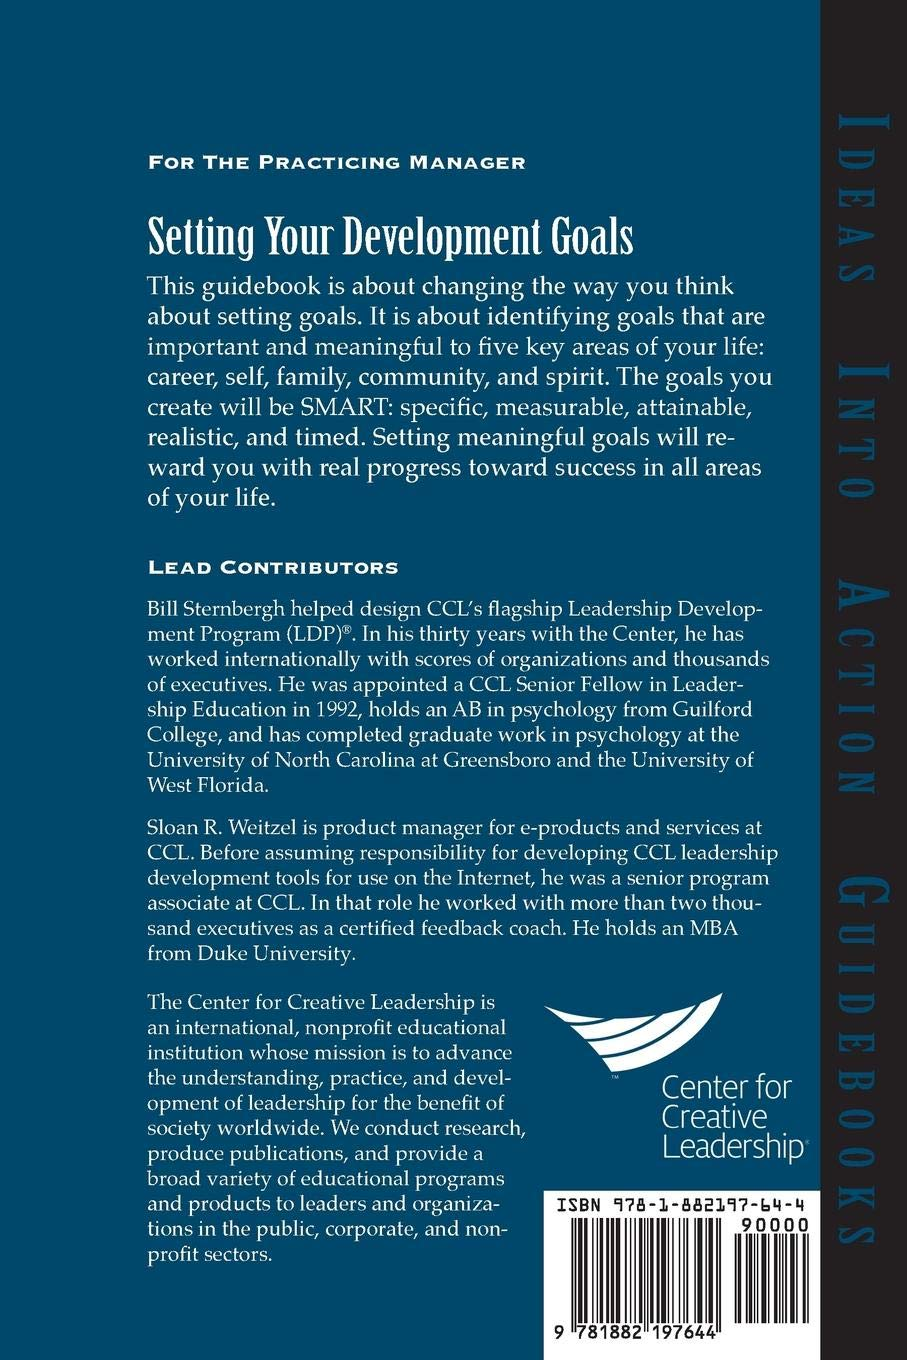 Setting Your Development Goals: Start with Your Values (J-B CCL (Center for  Creative Leadership)): Amazon.co.uk: Bill Sternbergh, Sloan R. Weitzel: ...